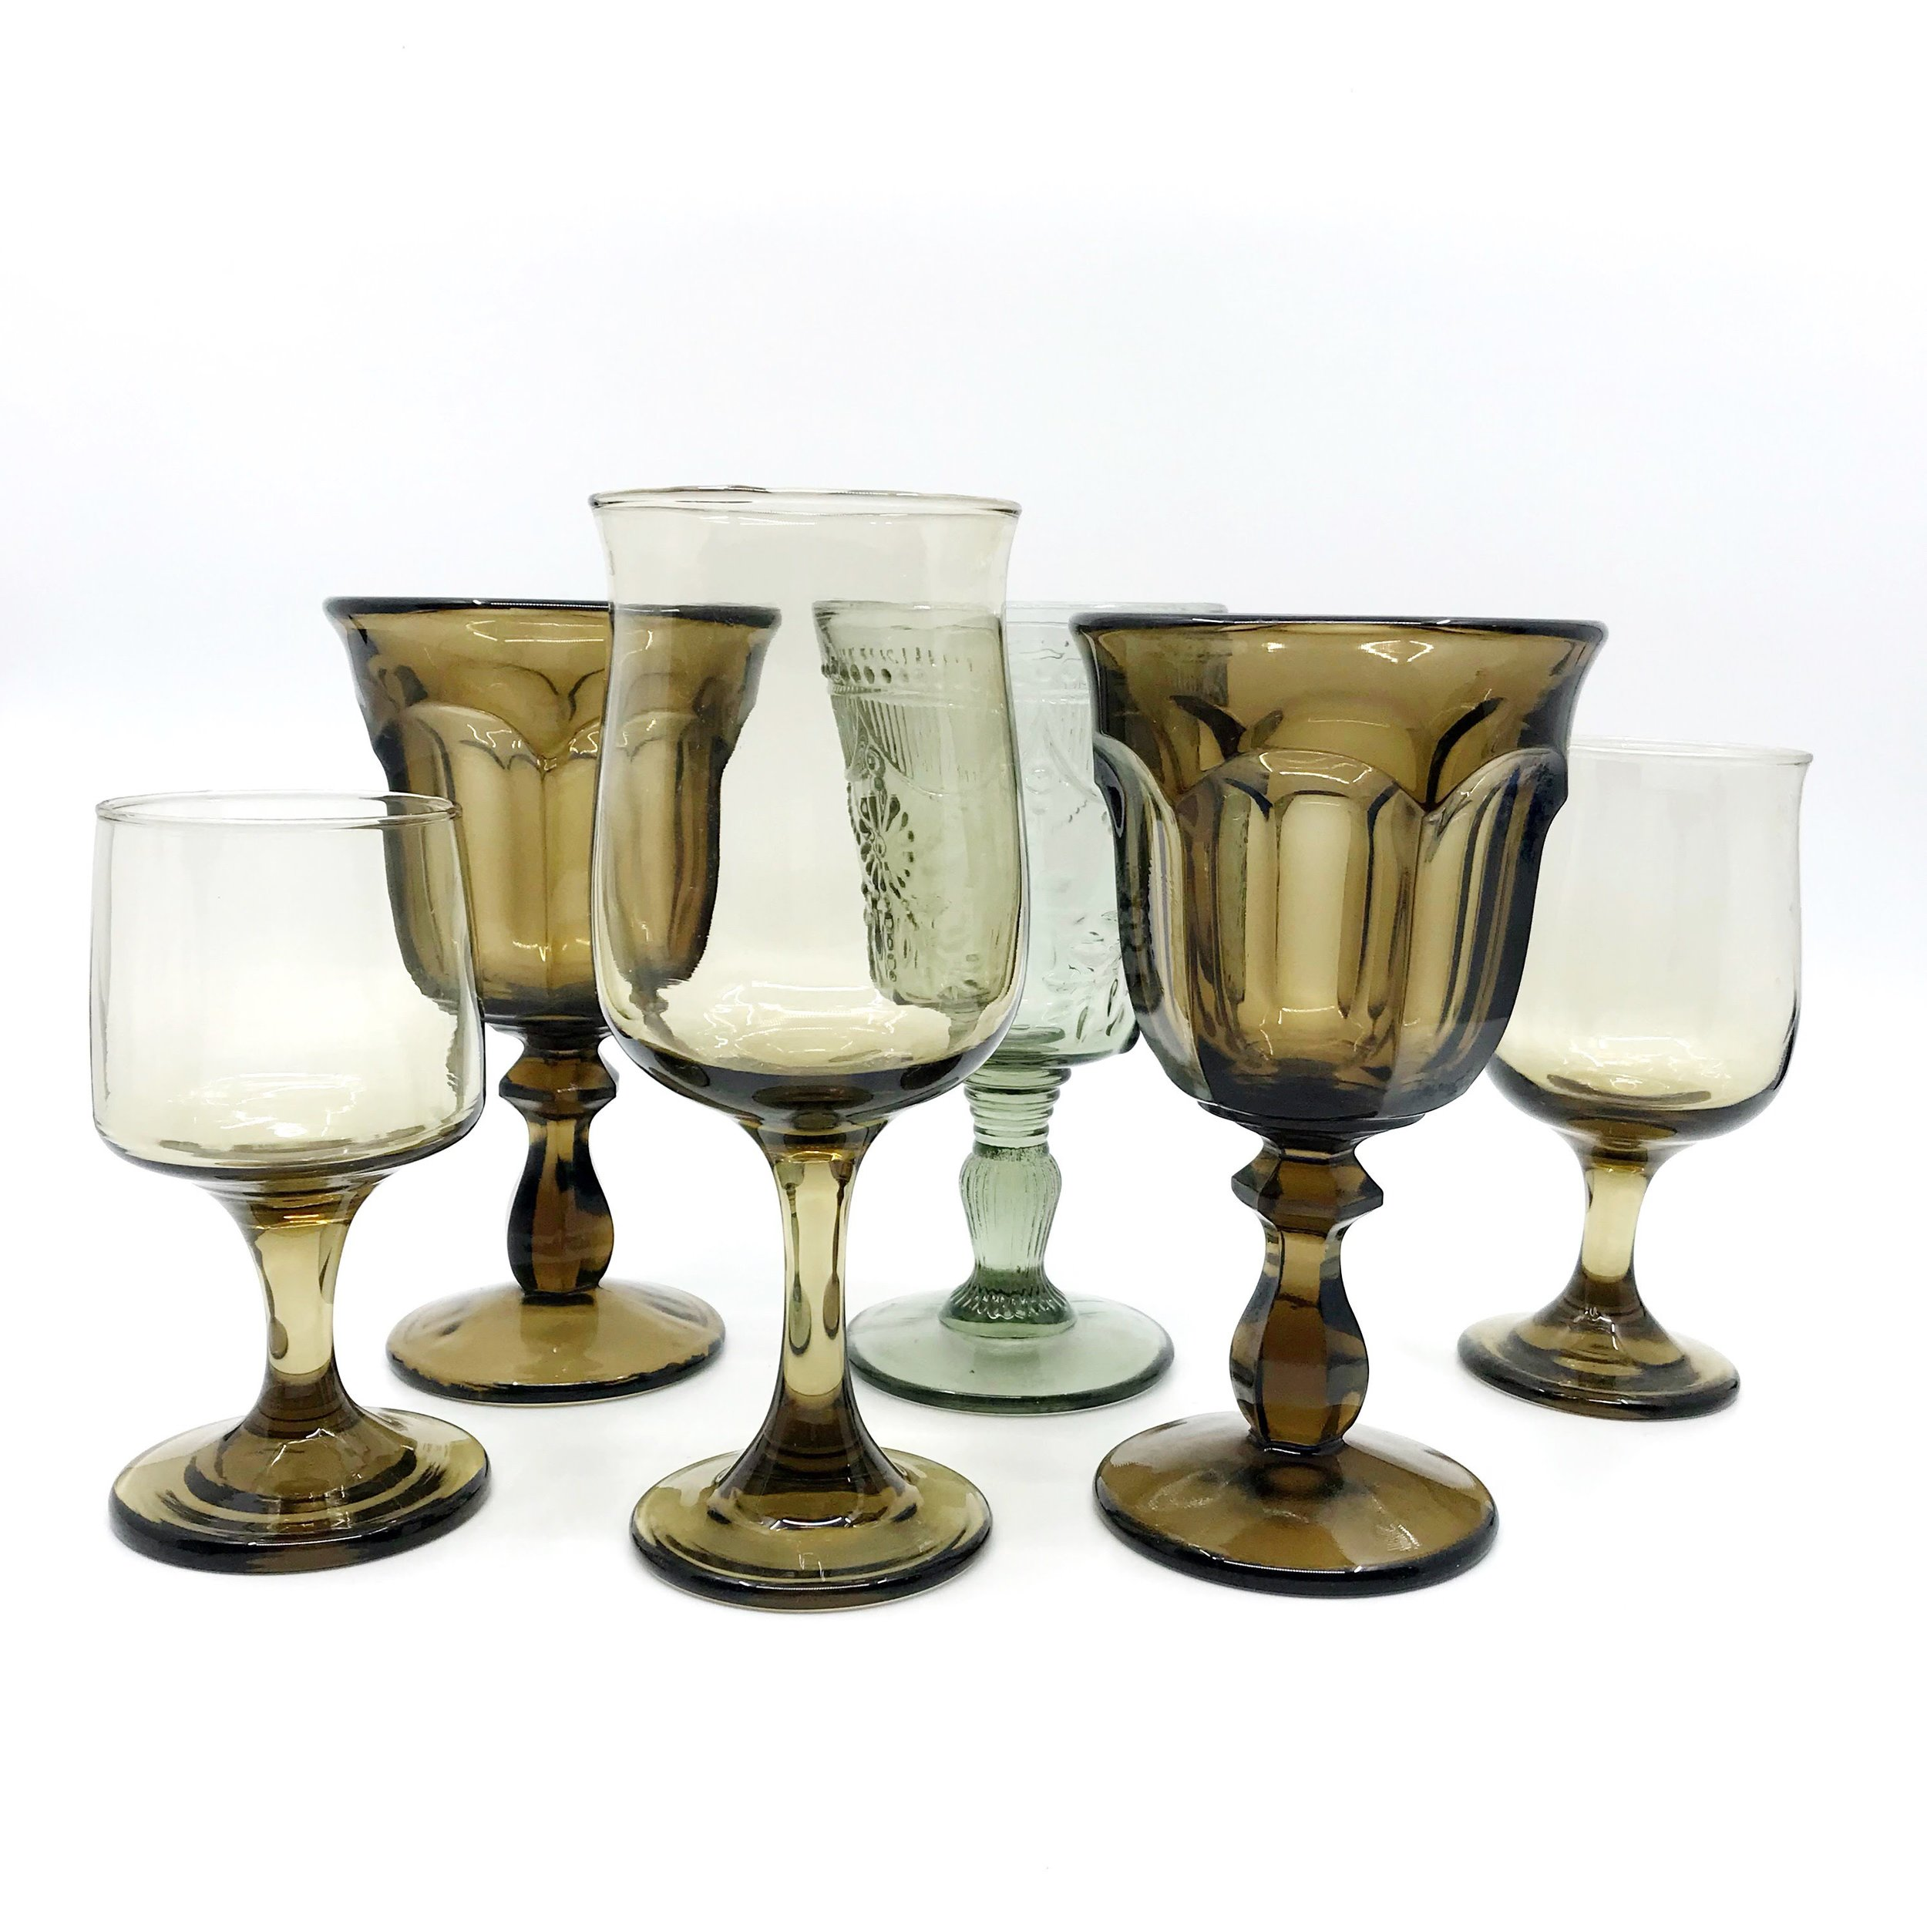 Smoke Glassware Collection